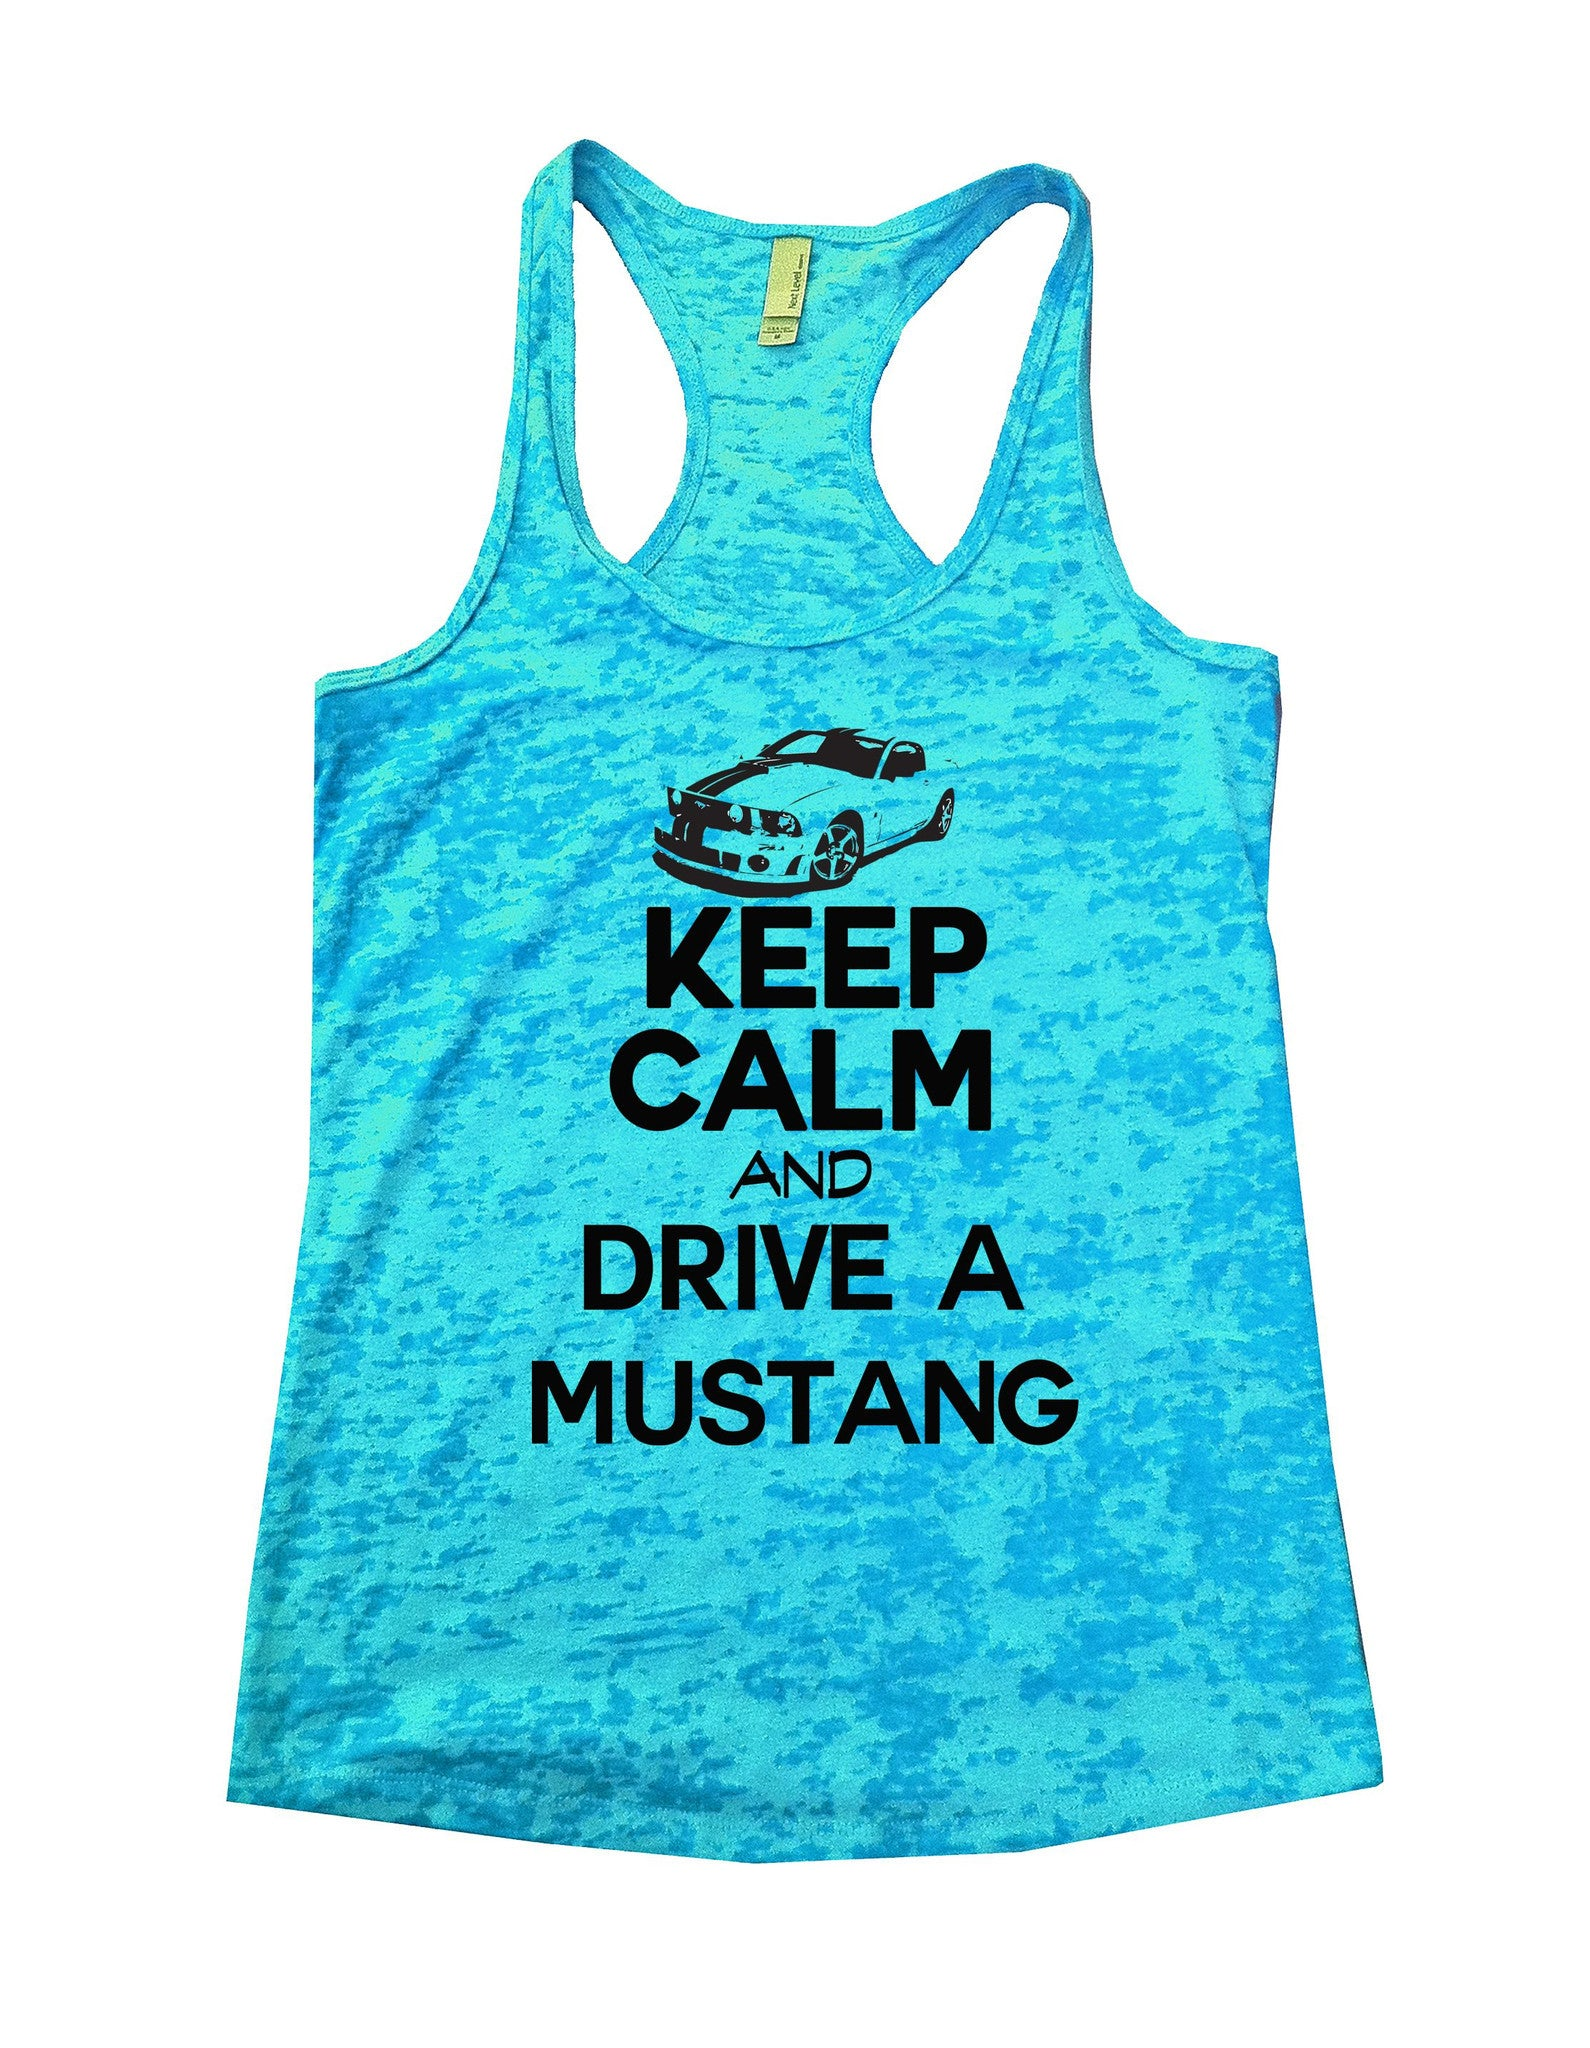 Keep Calm And Drive A Mustang Burnout Tank Top By BurnoutTankTops.com - 739 - Funny Shirts Tank Tops Burnouts and Triblends  - 4